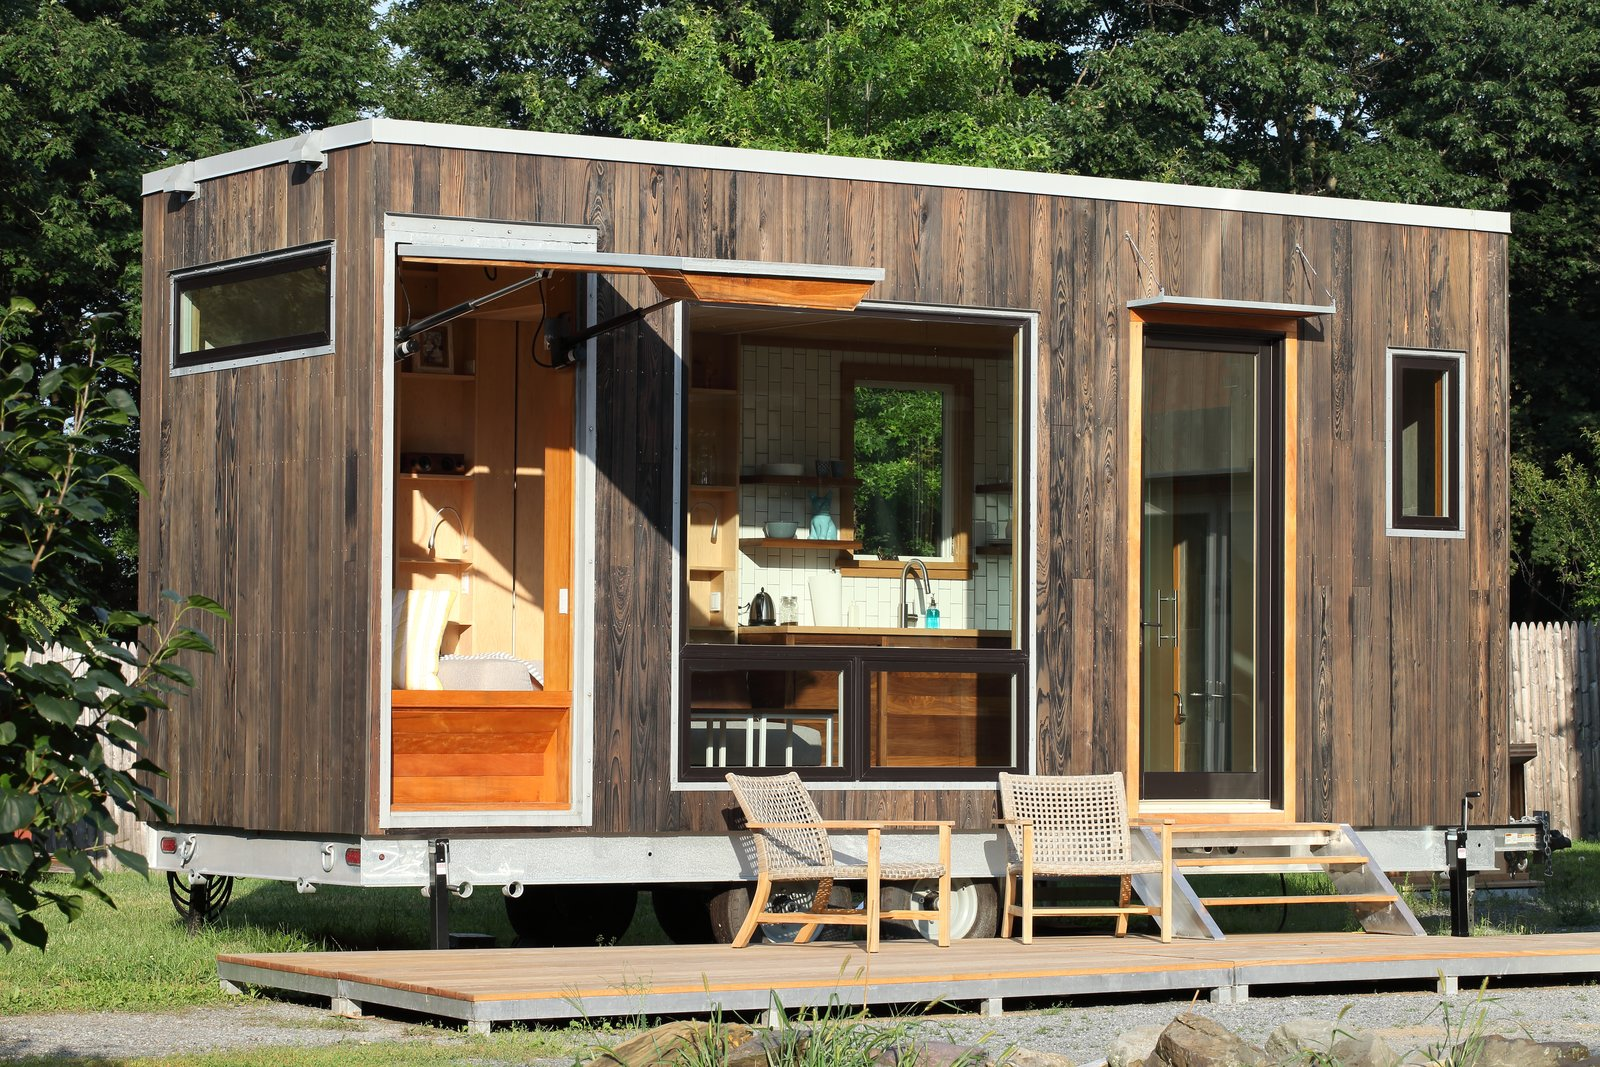 The Sturgis Modern Home In Greenwich, New York By Cubist